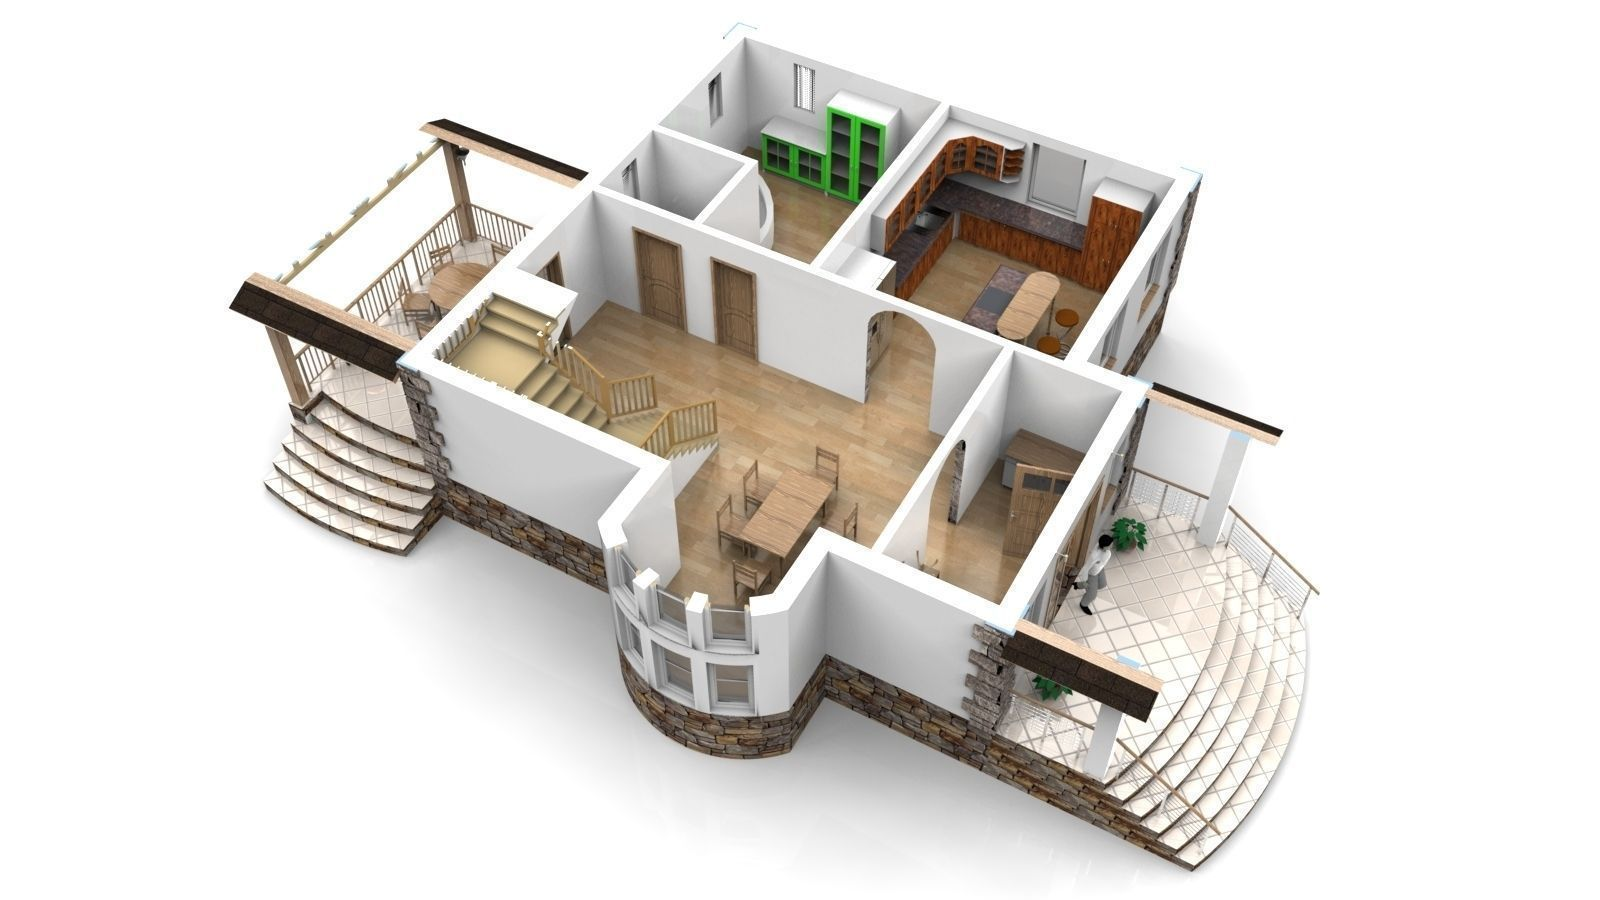 3d Model House Interior3d Model House Interior House And Home Design. Model  House Interior Model